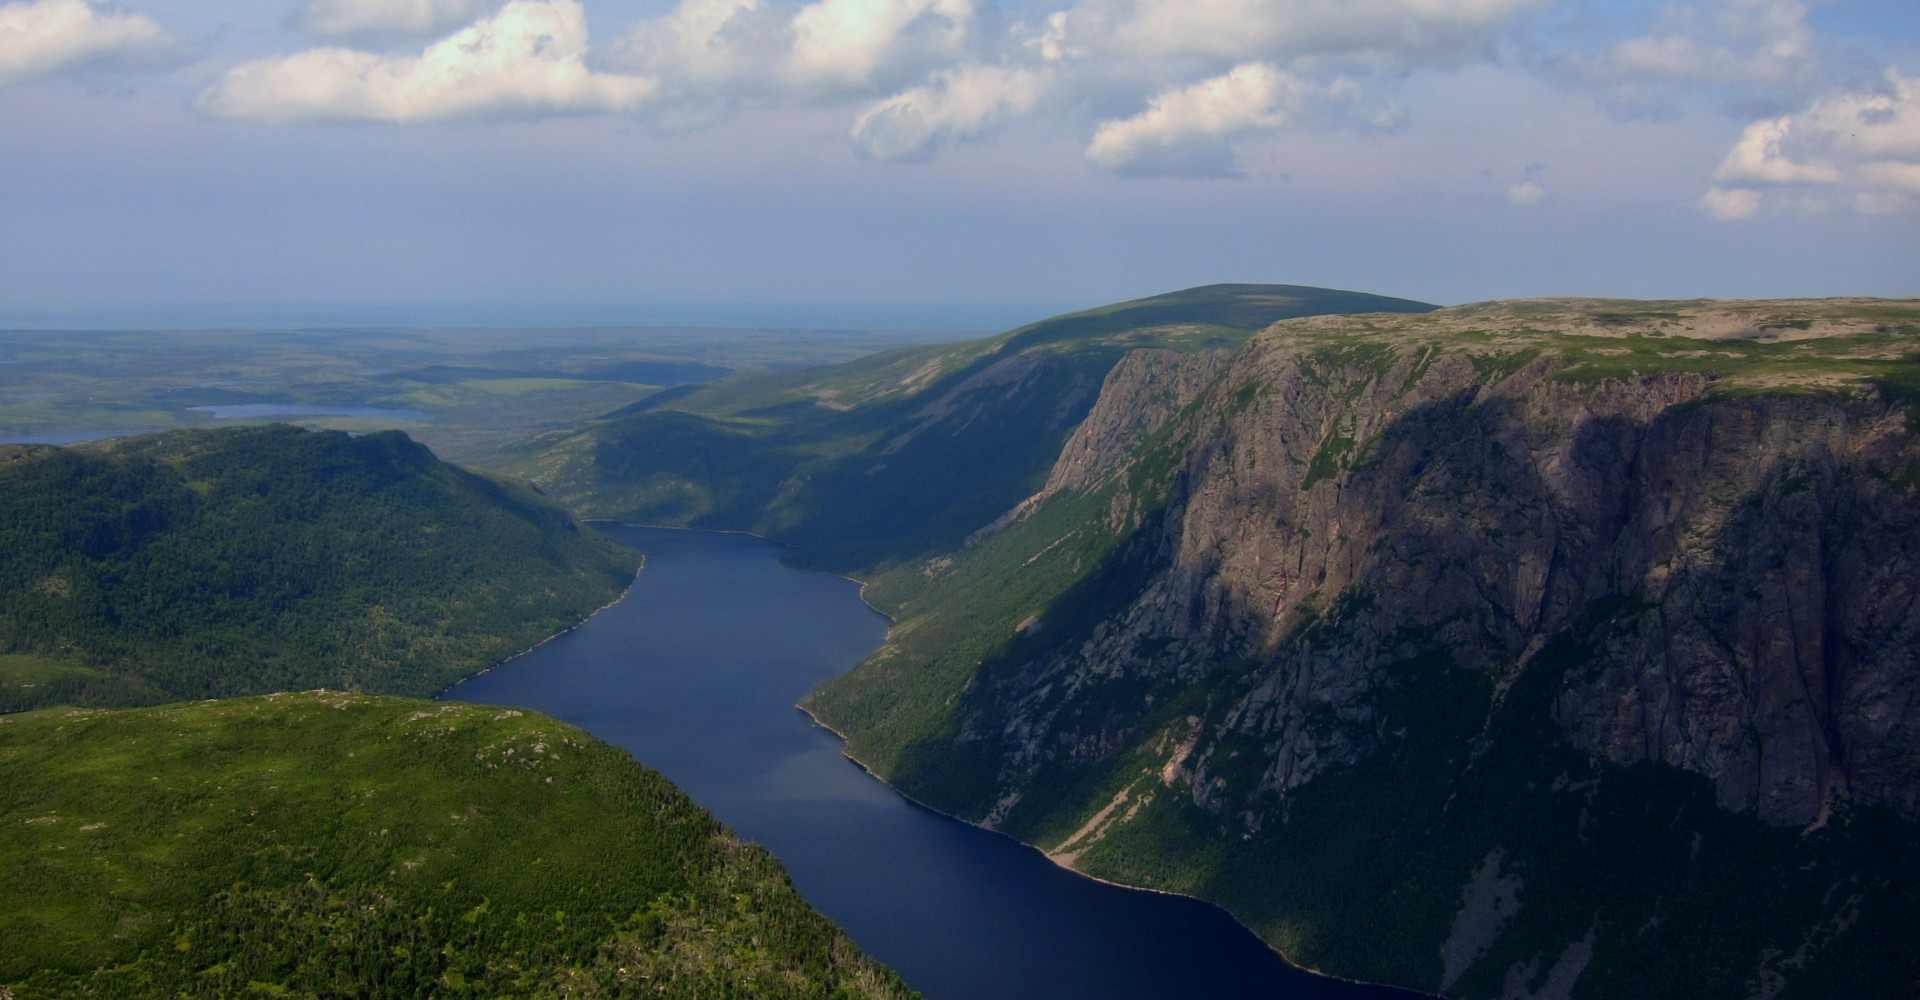 Photo Highlights from a Week in Newfoundland